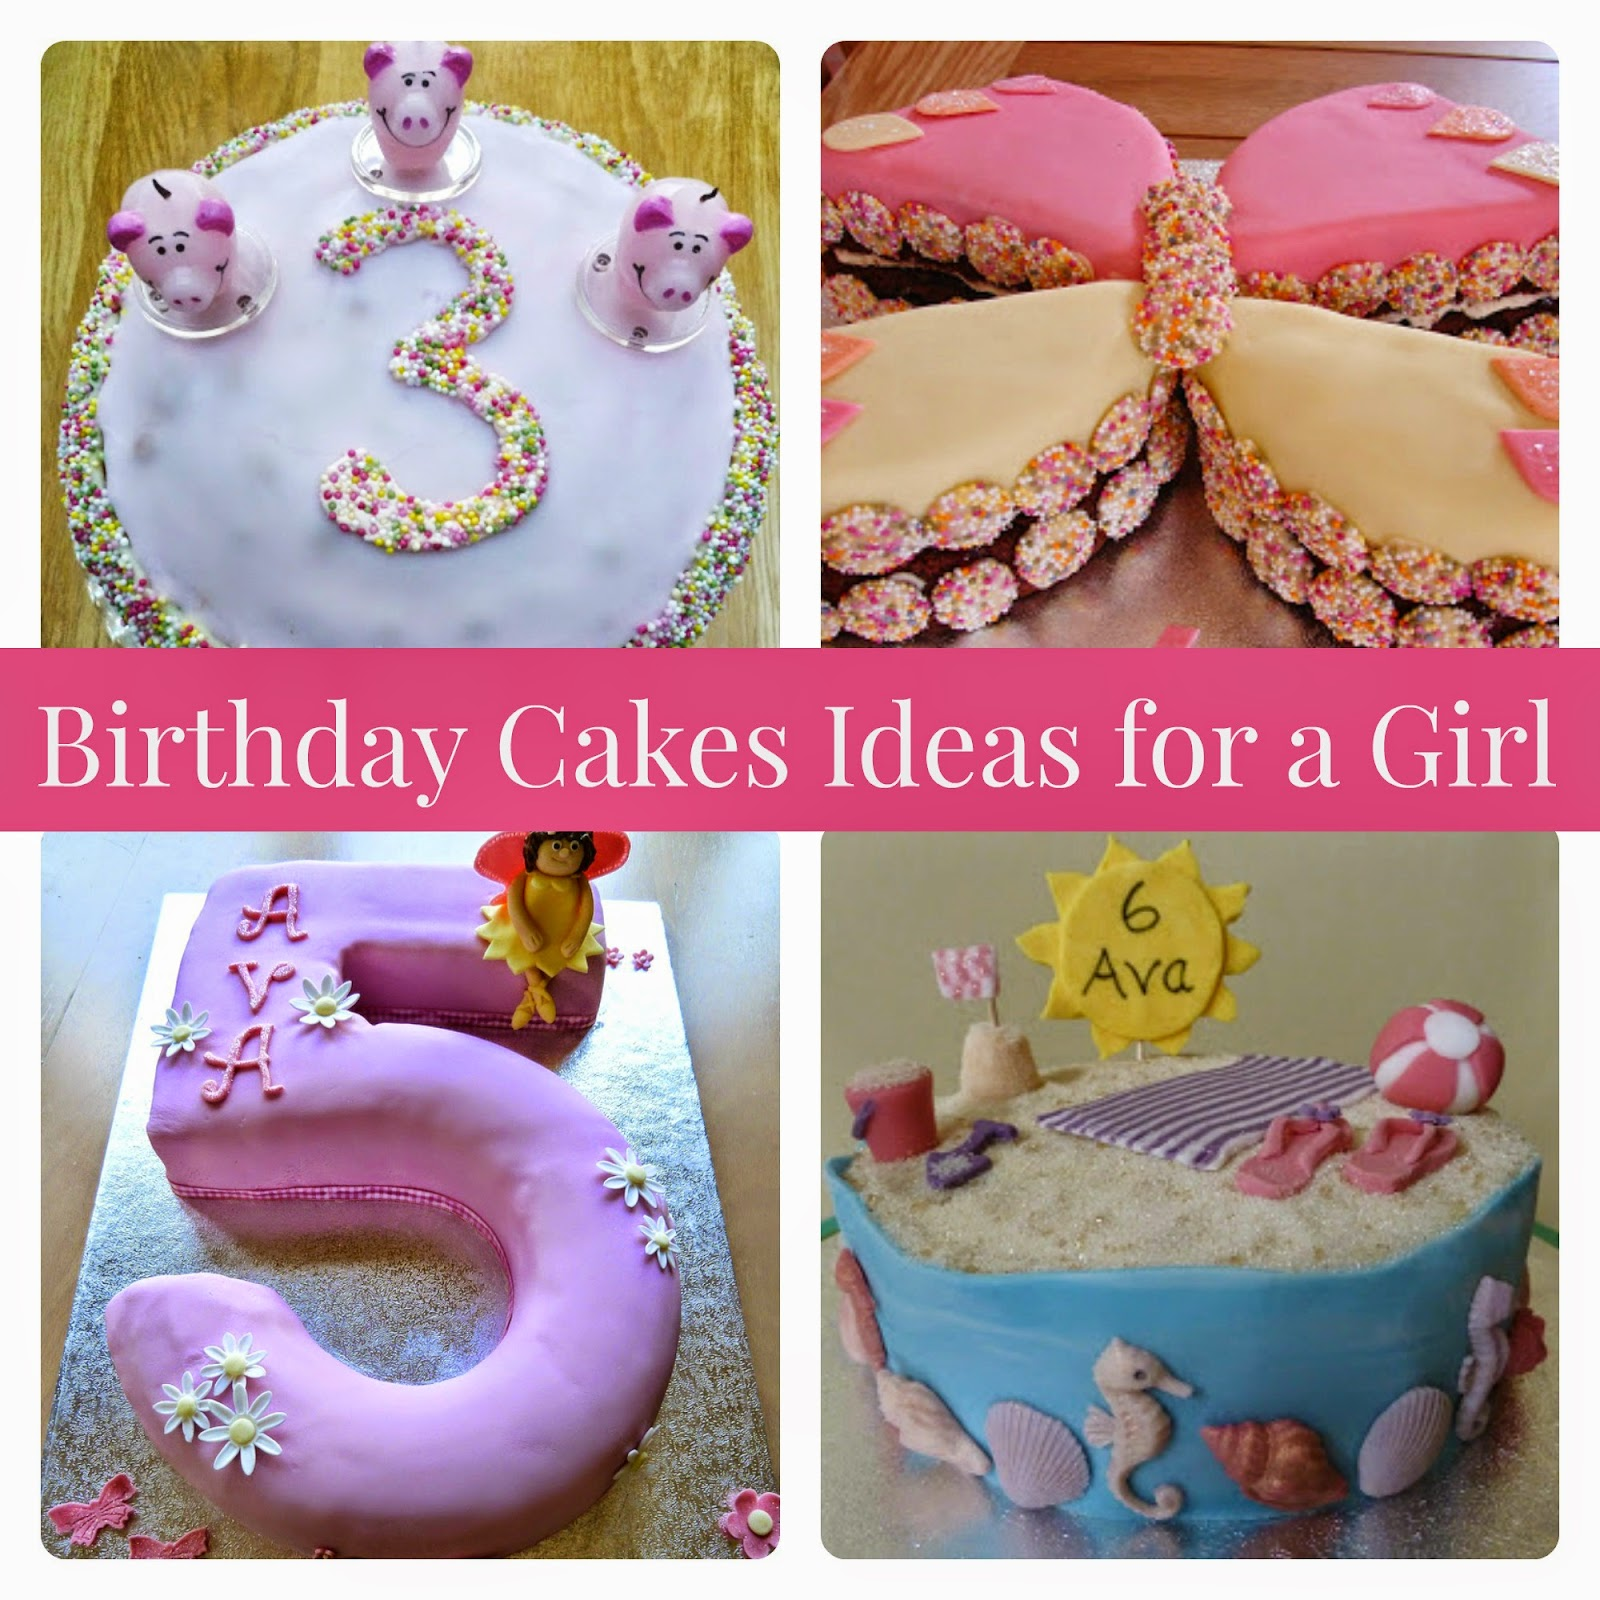 Birthday cake ideas for a little girl  sc 1 st  Garden Tea Cakes and Me & Looking for Birthday Cake Inspiration | Garden Tea Cakes and Me